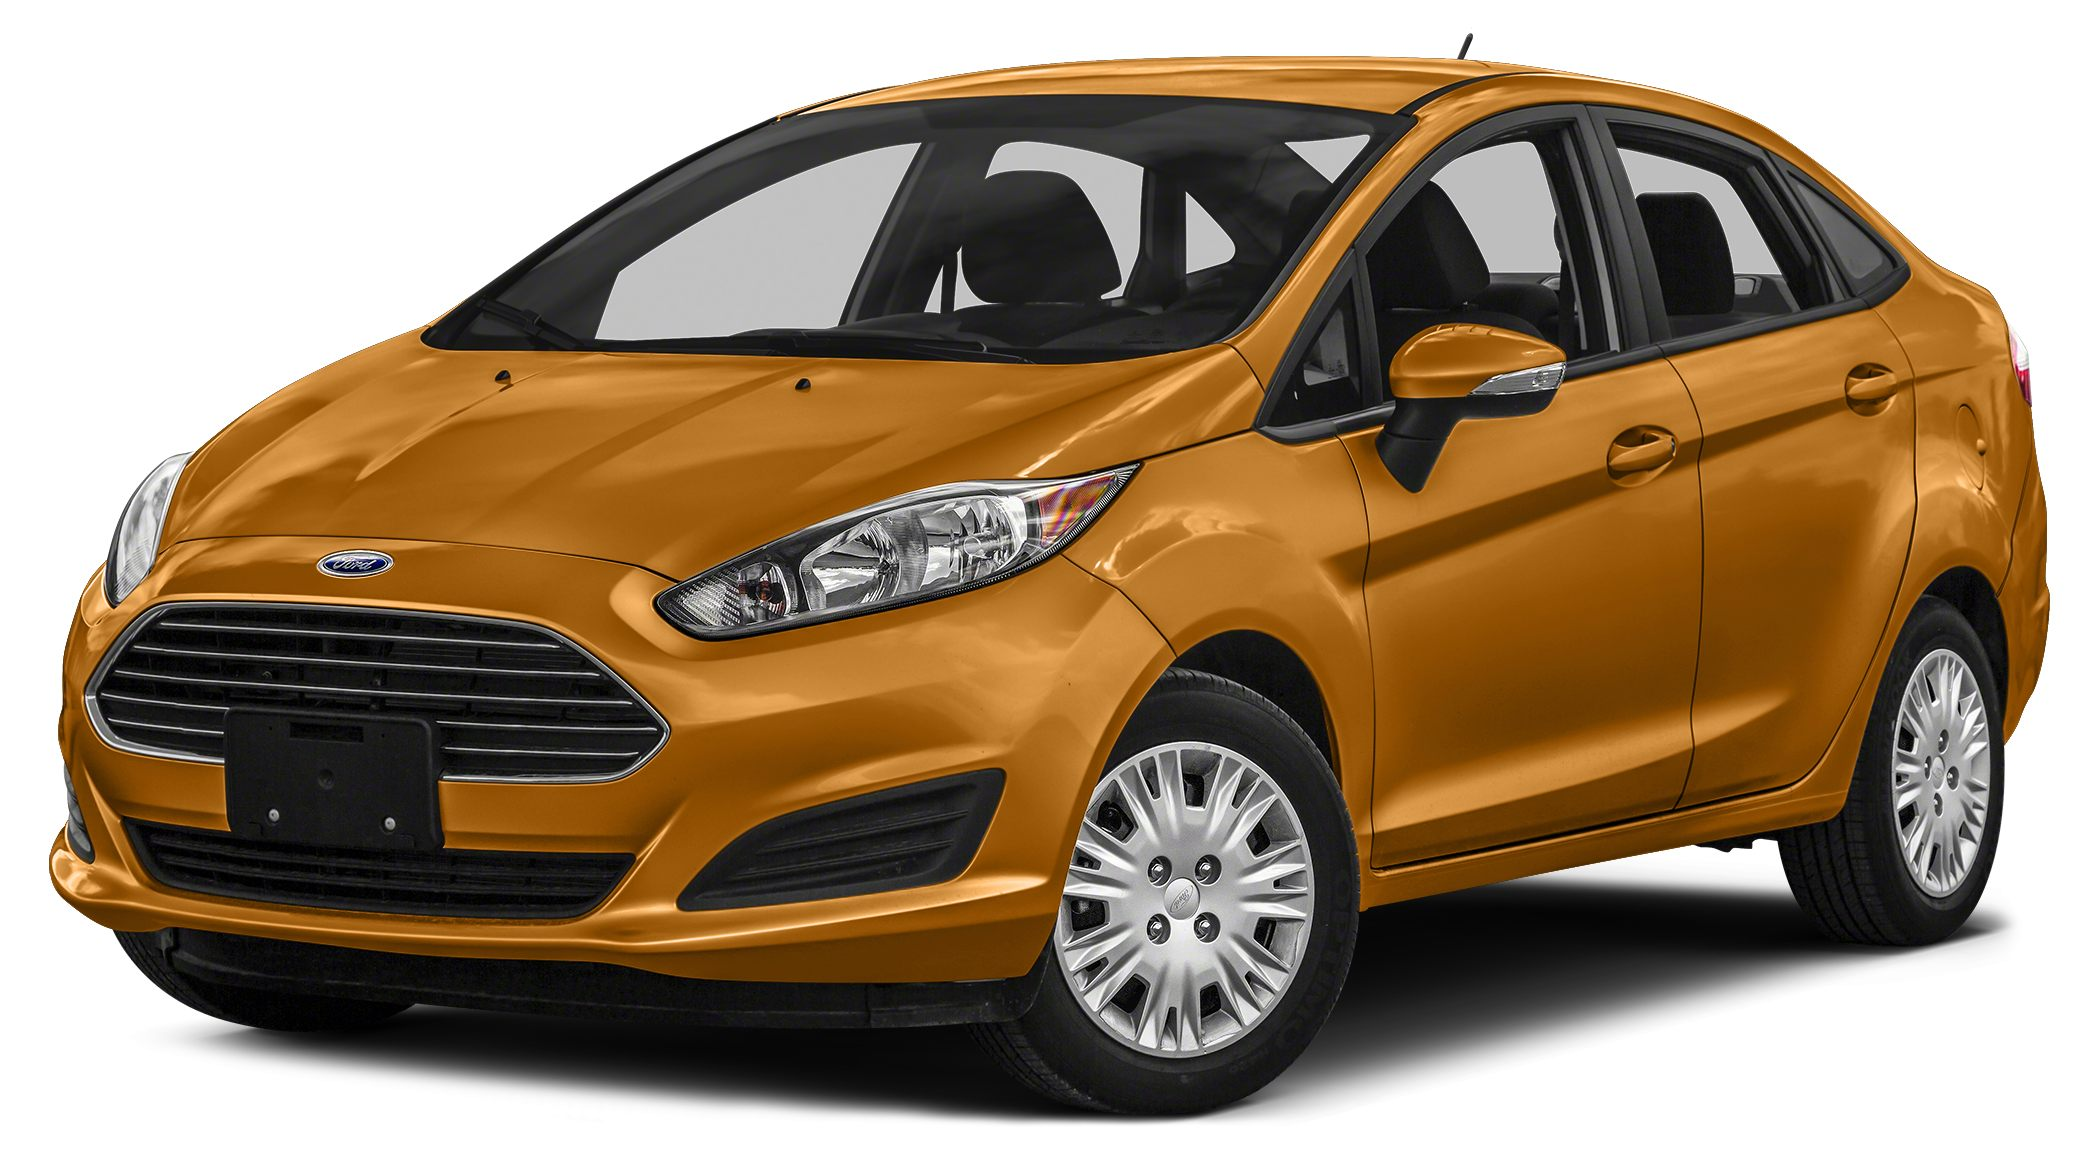 2016 Ford Fiesta SE The refreshed 2016 Ford Fiesta is attractive highly capable and a joy to driv